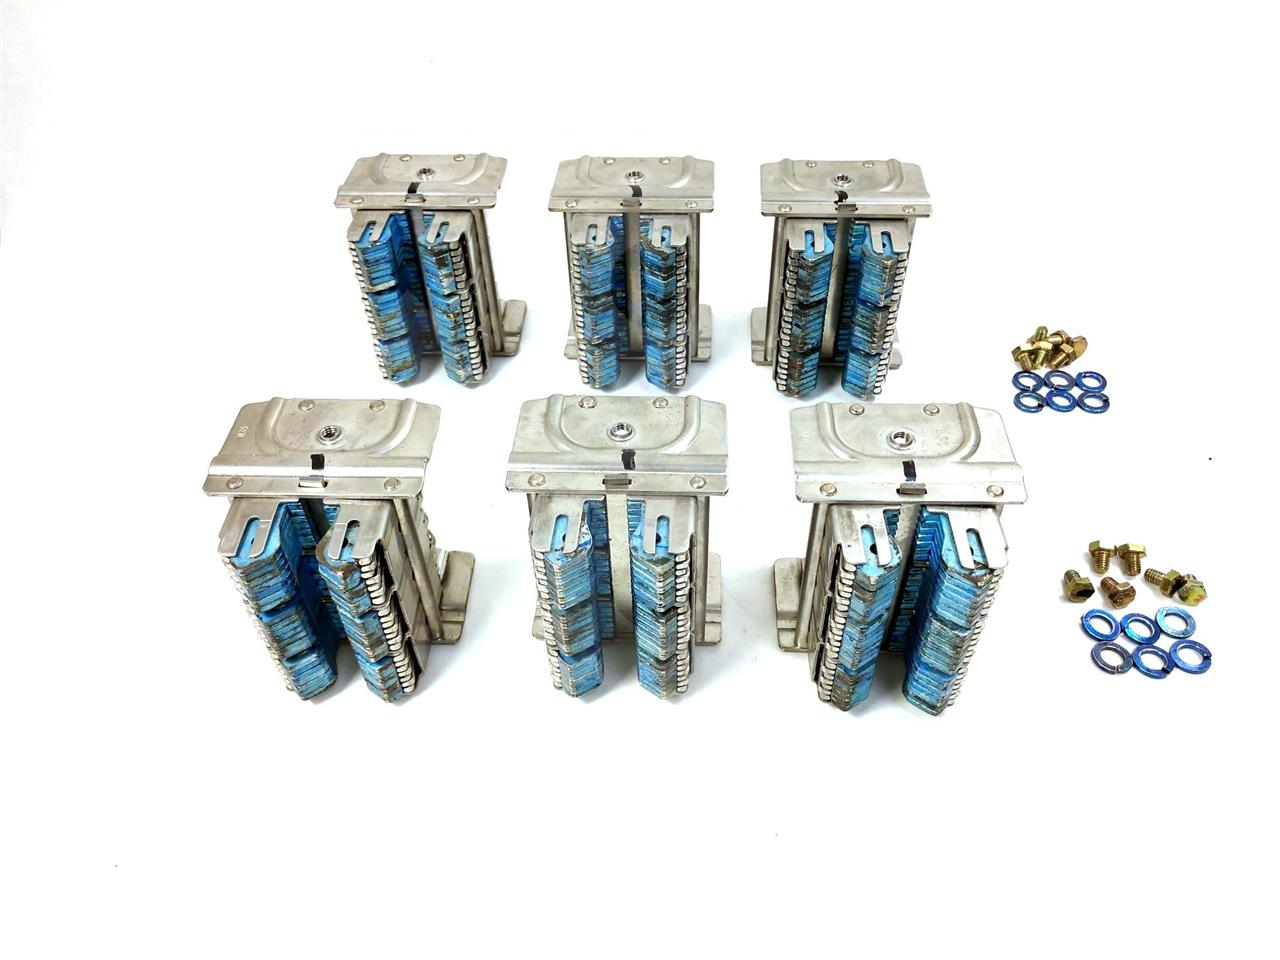 WH 1600A/2000A/4000A PRIMARY DISCONNECT ASSEMBLY KIT